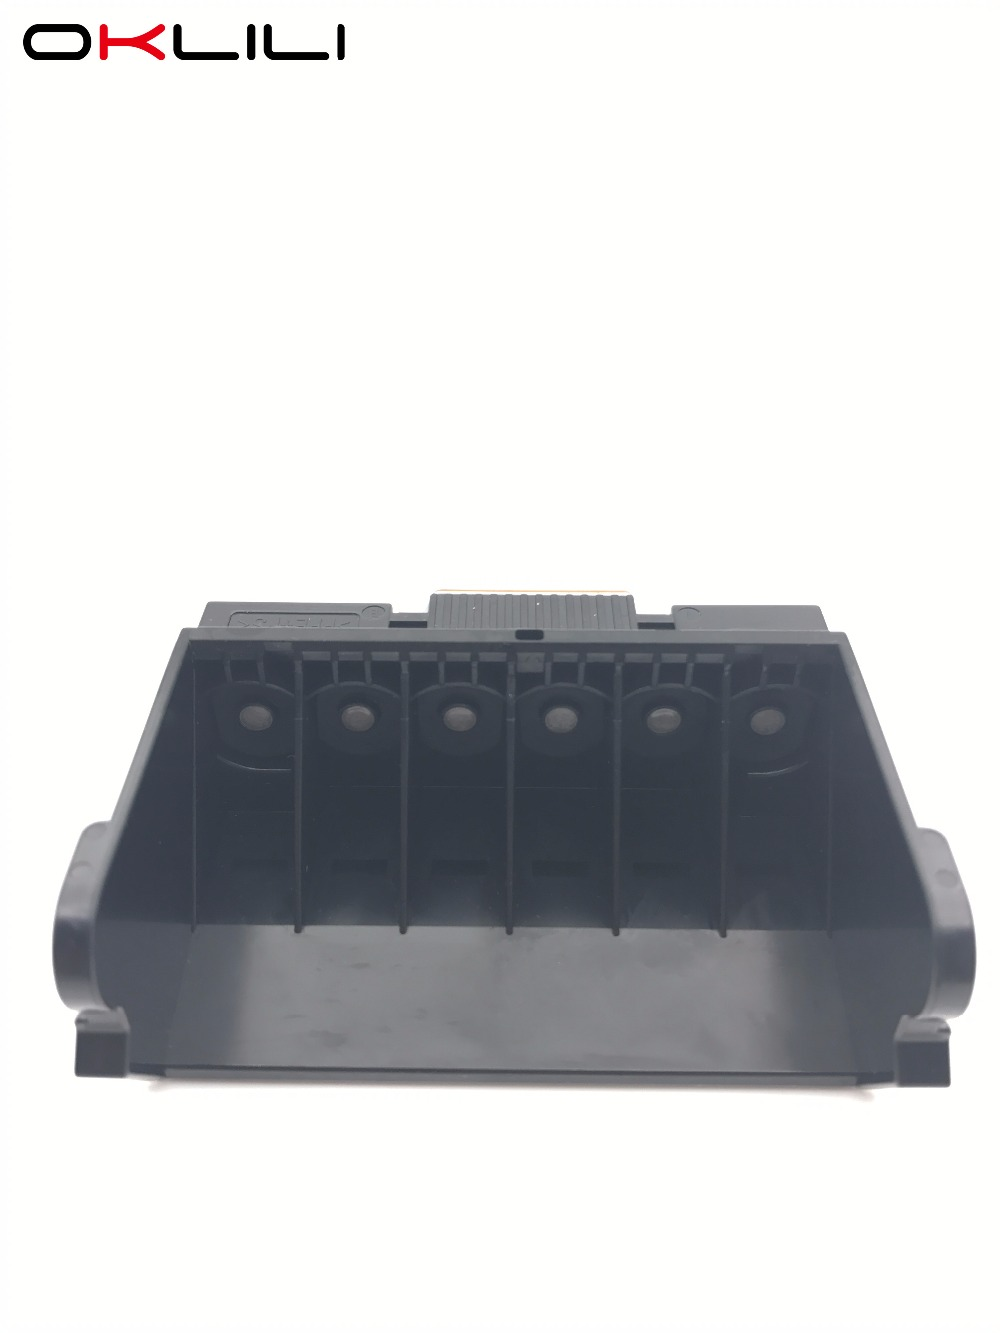 OKLILI ORIGINAL QY6-0063 QY6-0063-000 Printhead Print Head Printer Head for Canon iP6600D iP6700D iP6600 iP6700 цена